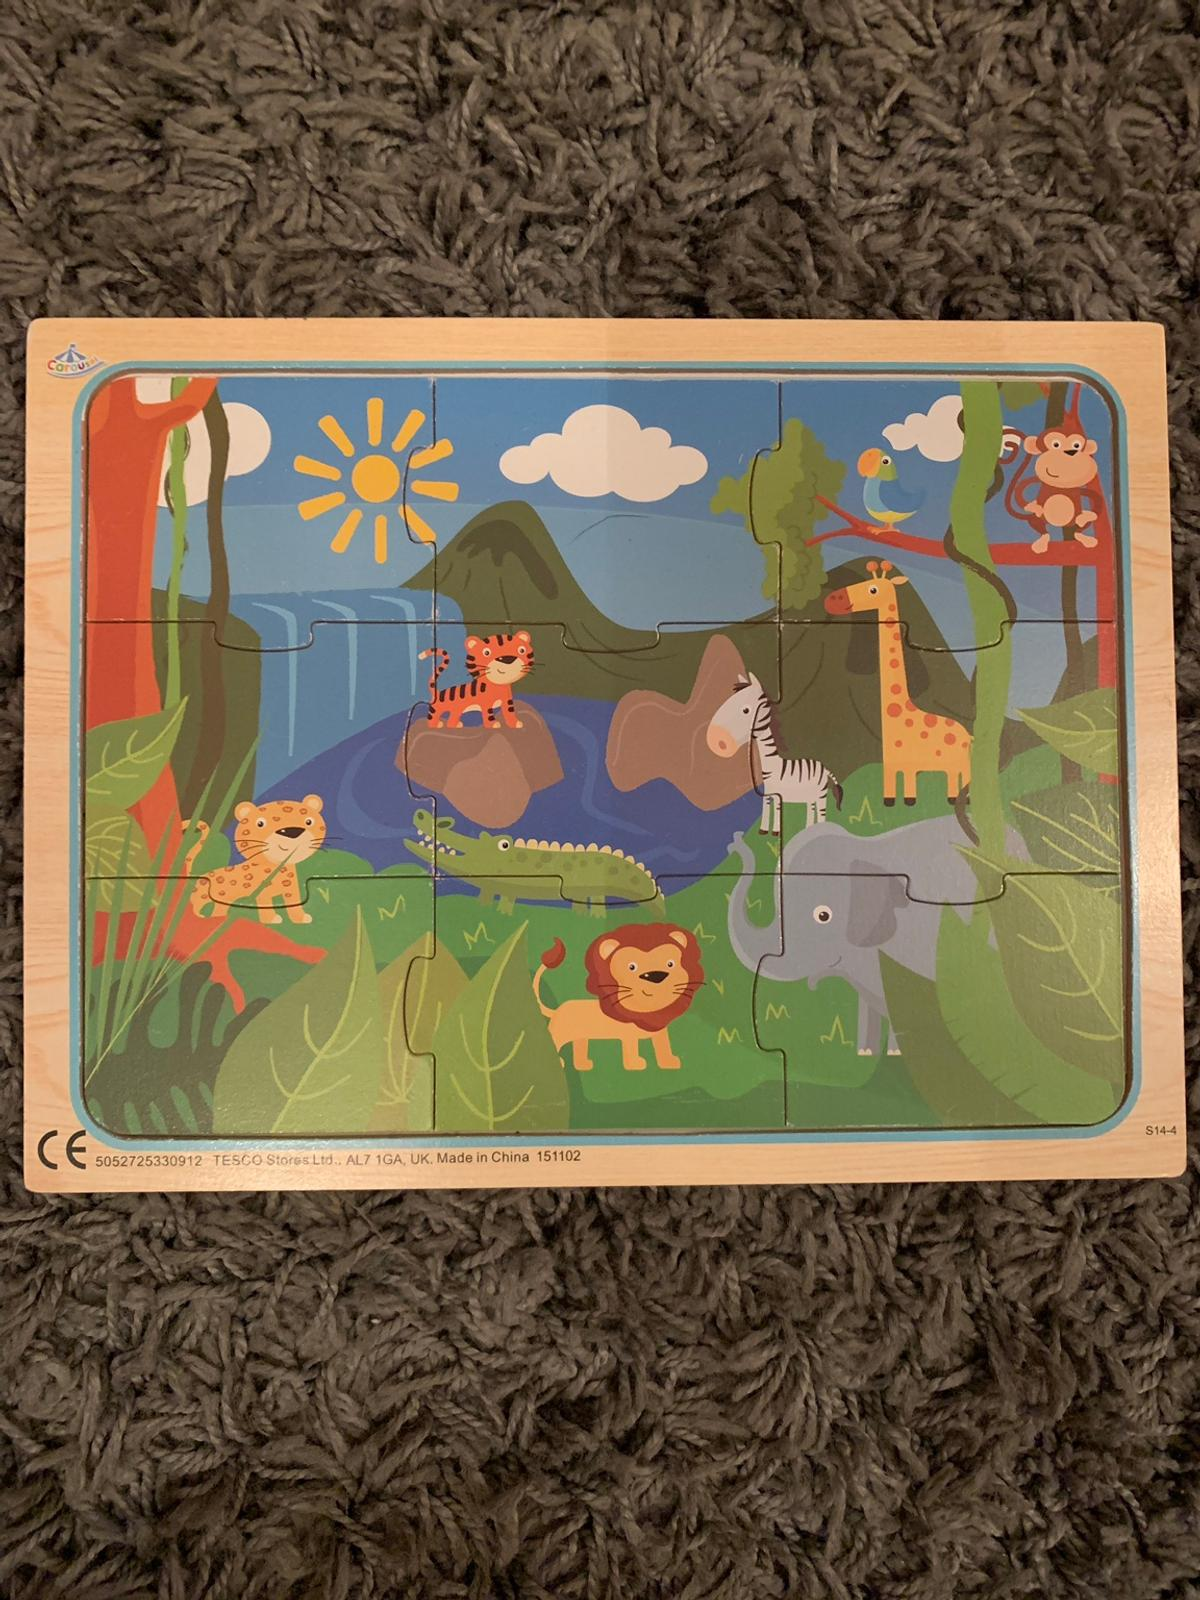 Perfect condition. All pieces are there. 9 piece puzzle and board.